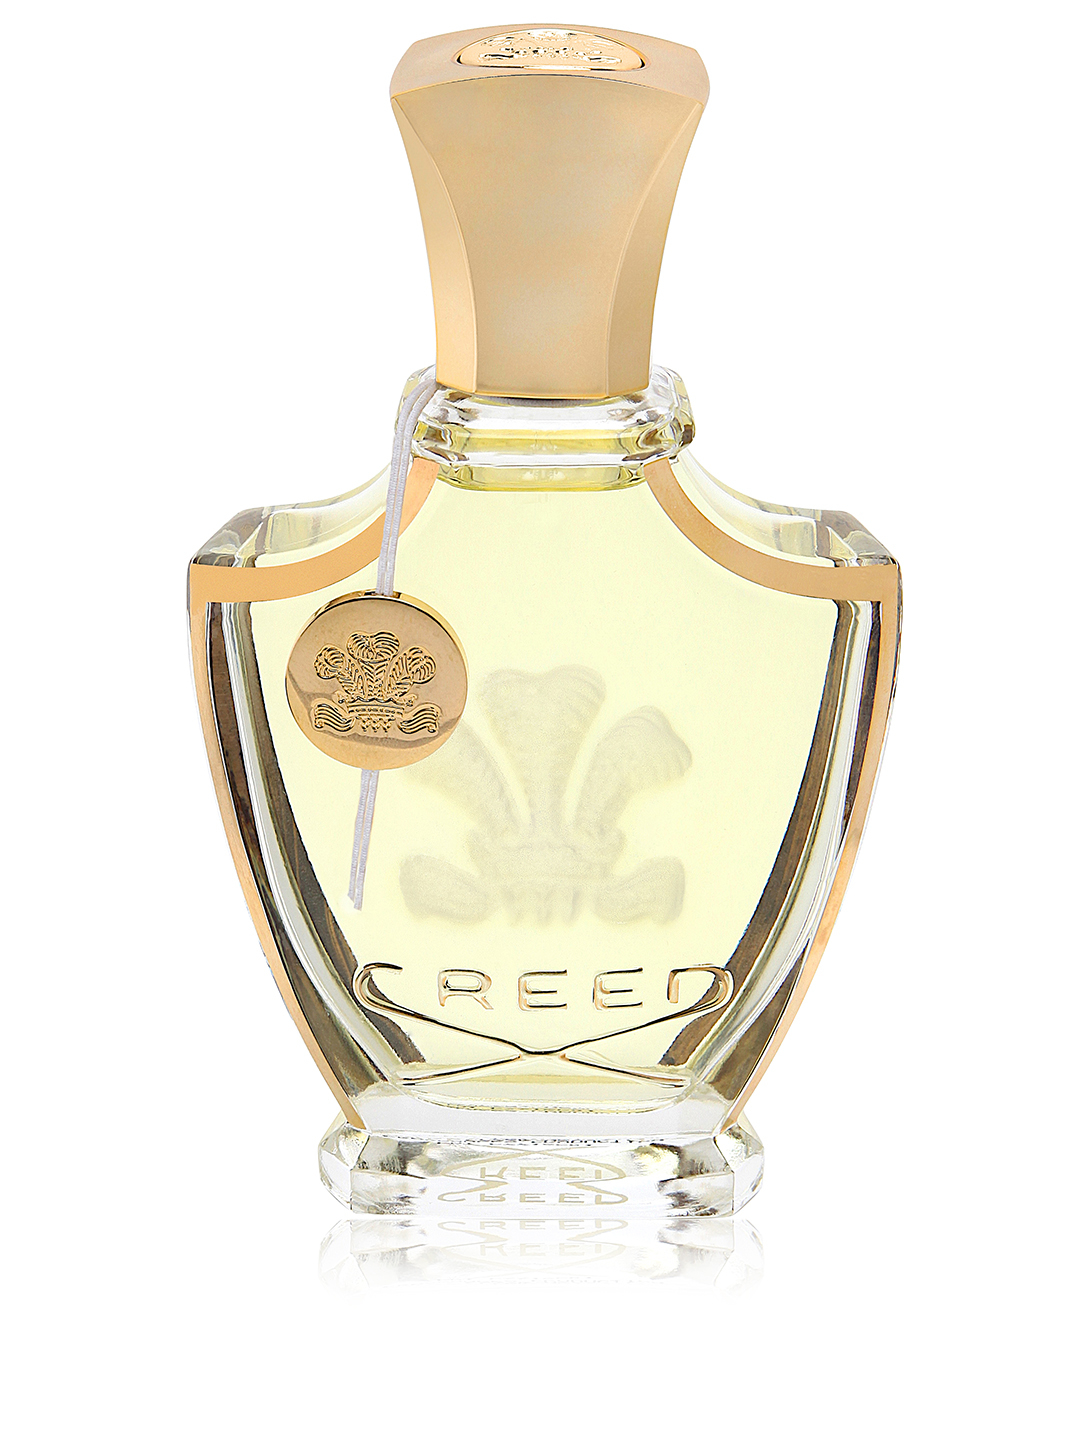 CREED Rose Imperiale Eau de Parfum Designers